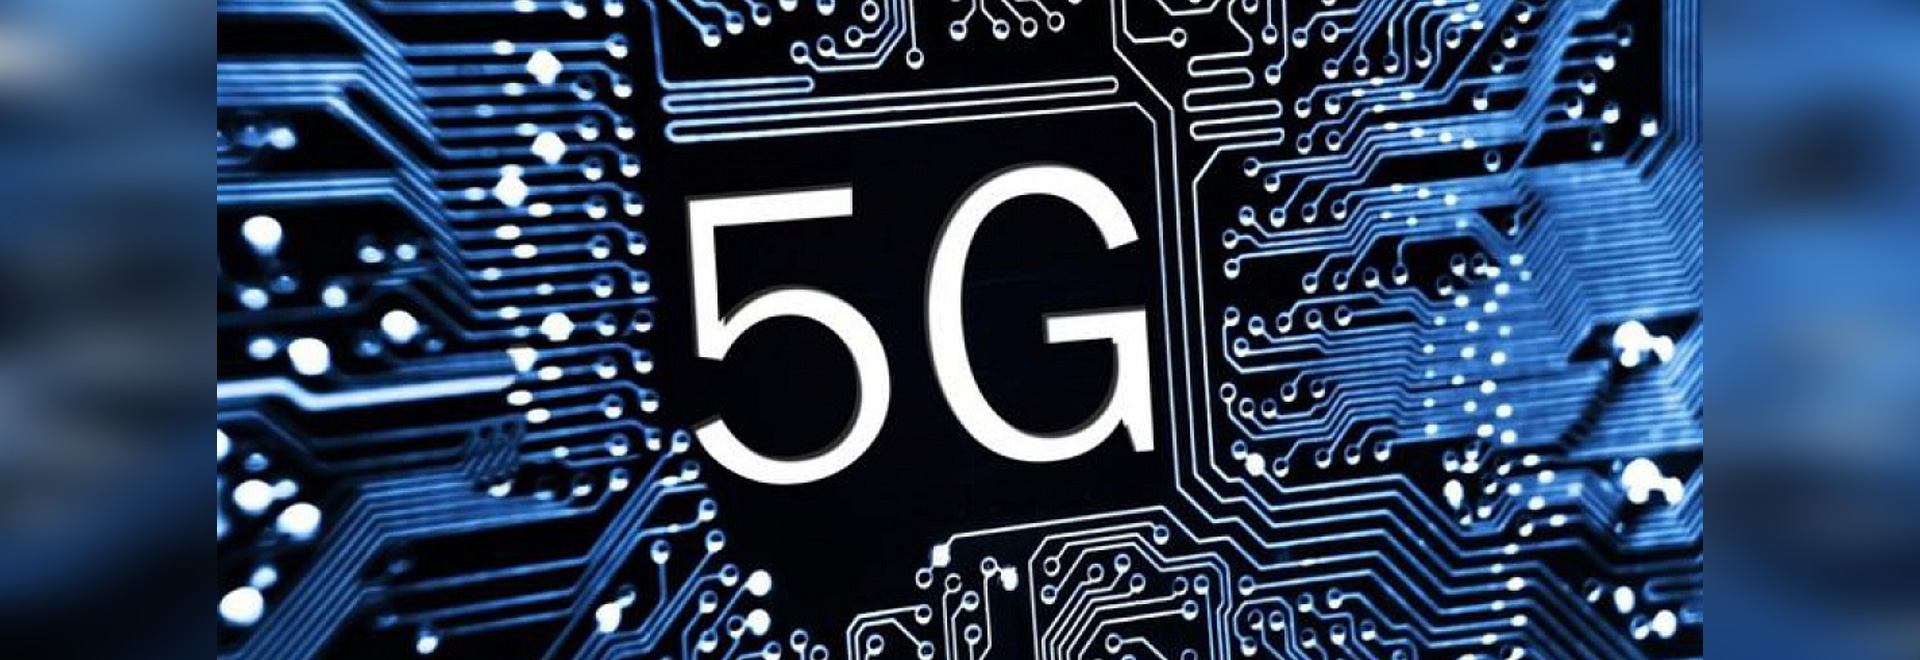 Is PCB Industry Ready For 5G Era?